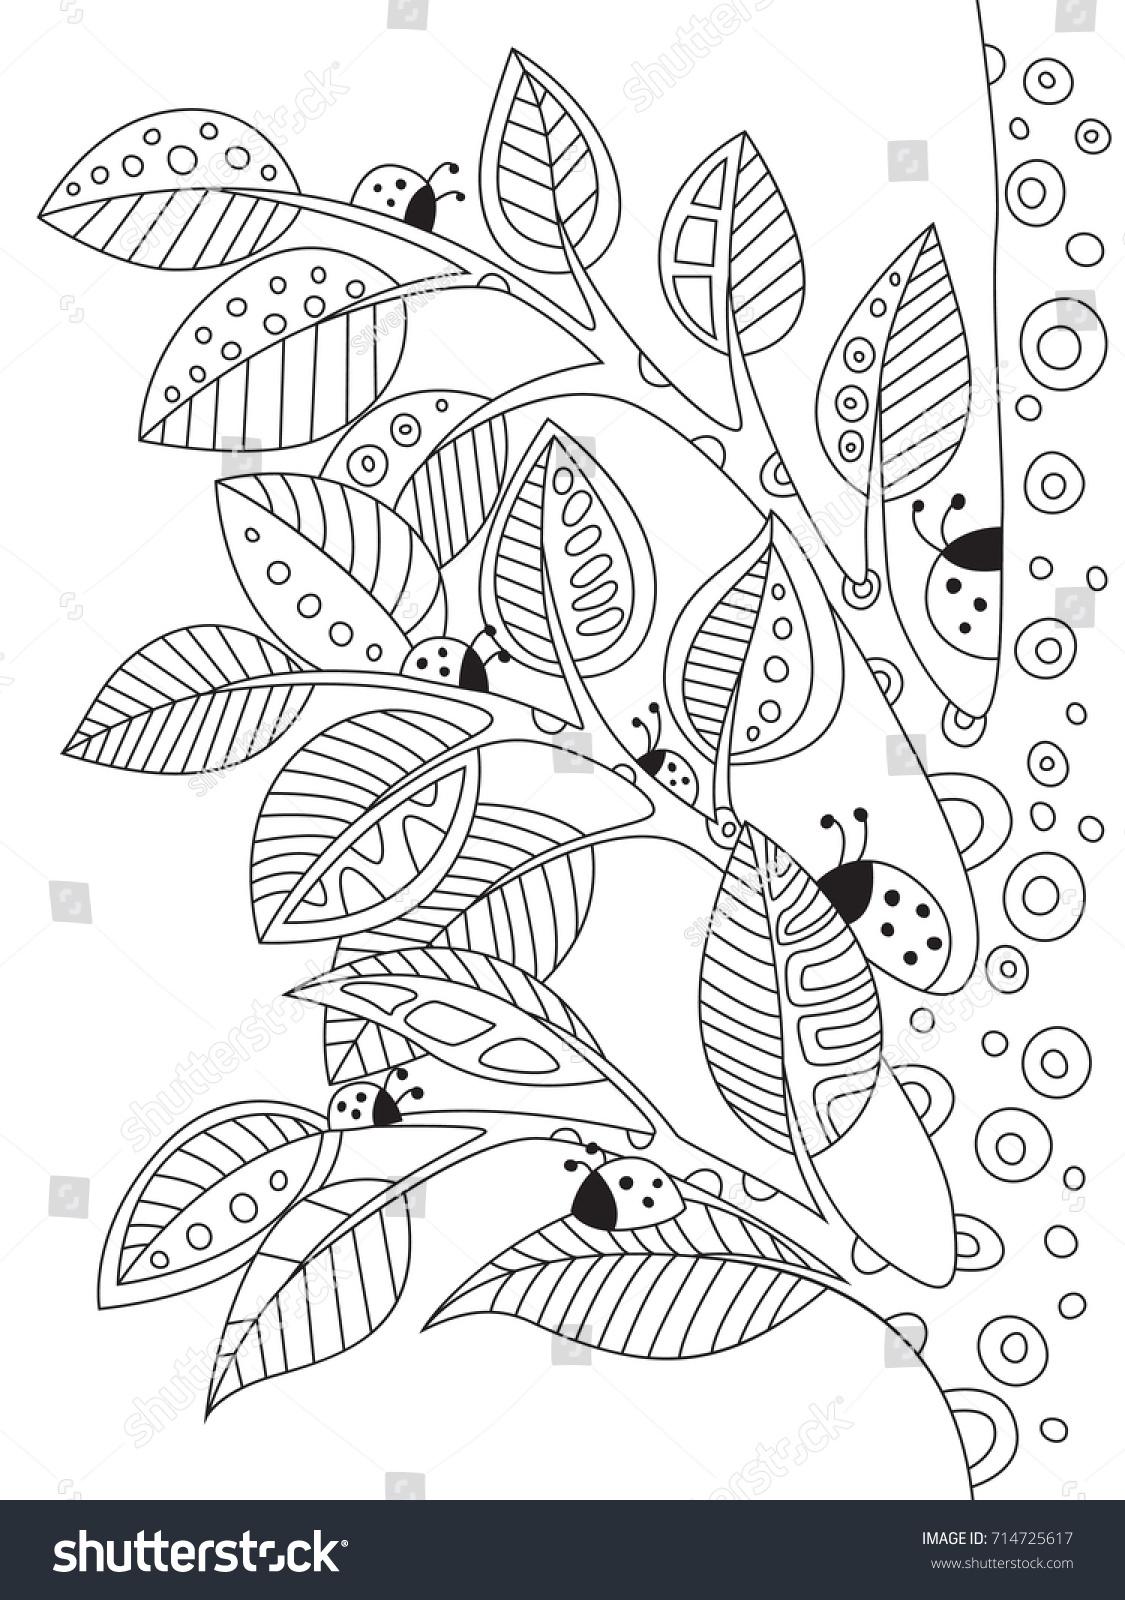 Anti stress colouring book asda - Outlined Doodle Anti Stress Coloring Book Page Ladybugs On A Tree Coloring Book Page